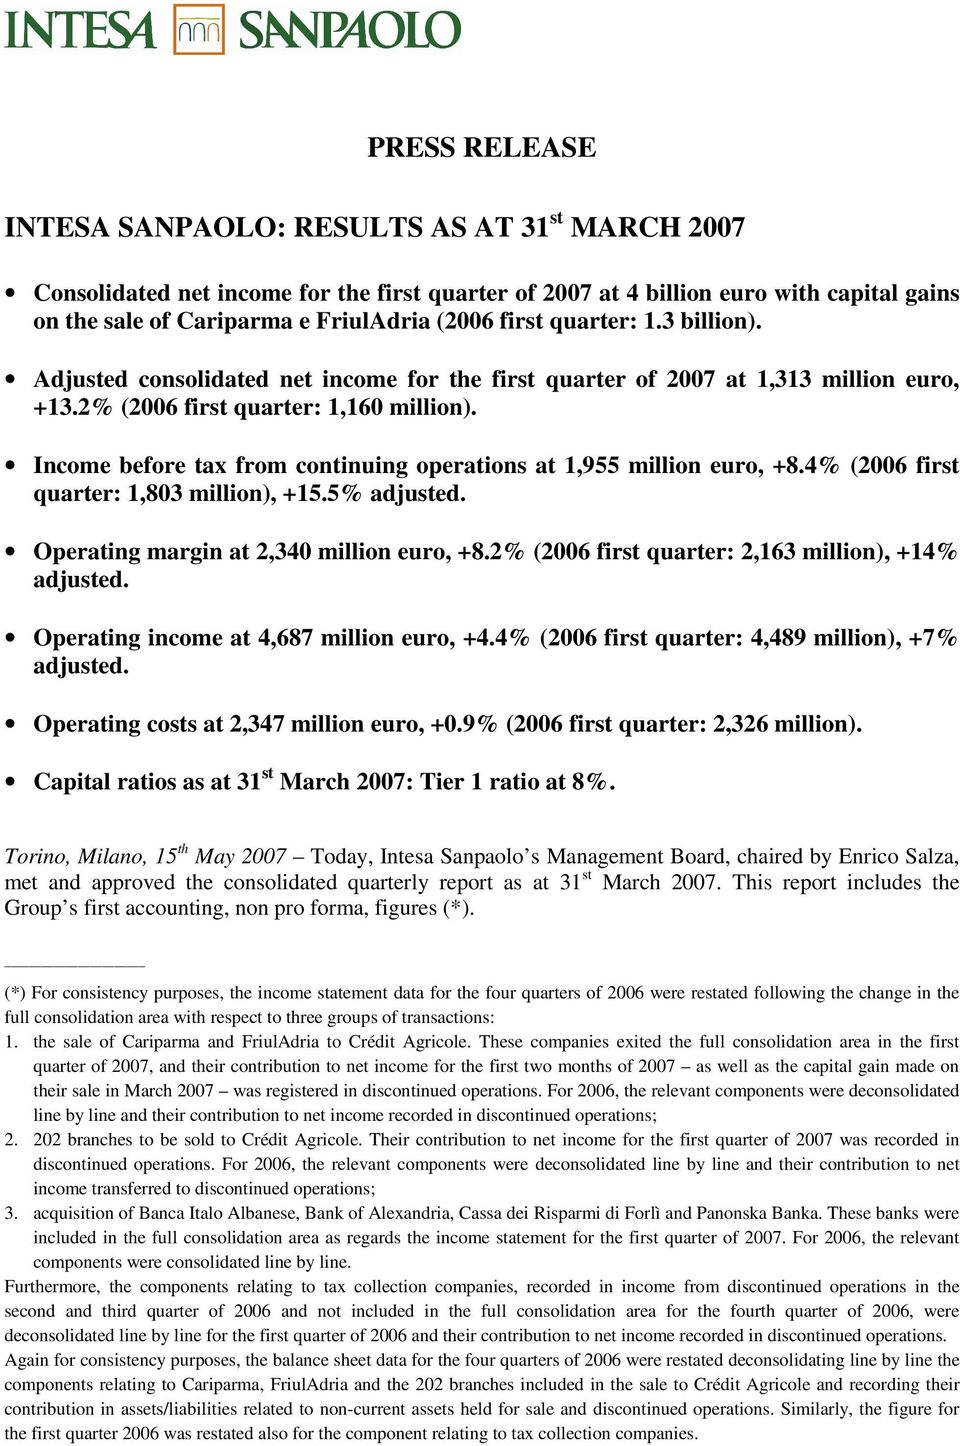 Income before tax from continuing operations at 1,955 million euro, +8.4% (2006 first quarter: 1,803 million), +15.5% adjusted. Operating margin at 2,340 million euro, +8.